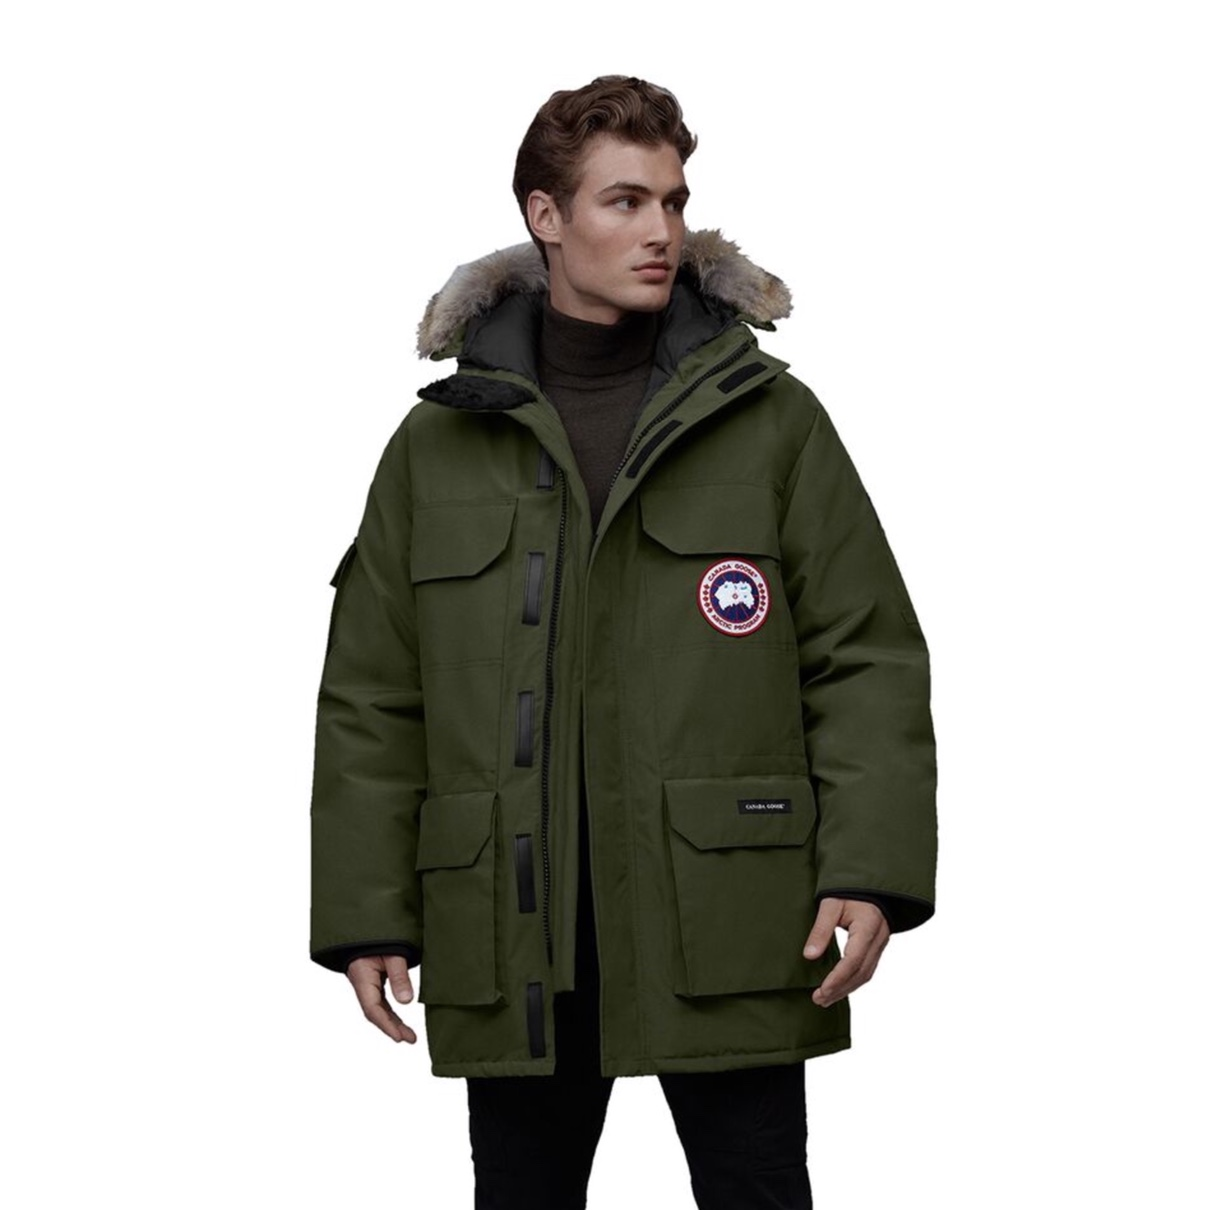 Product Image 1 - Authentic Men's Canada Goose Expedition